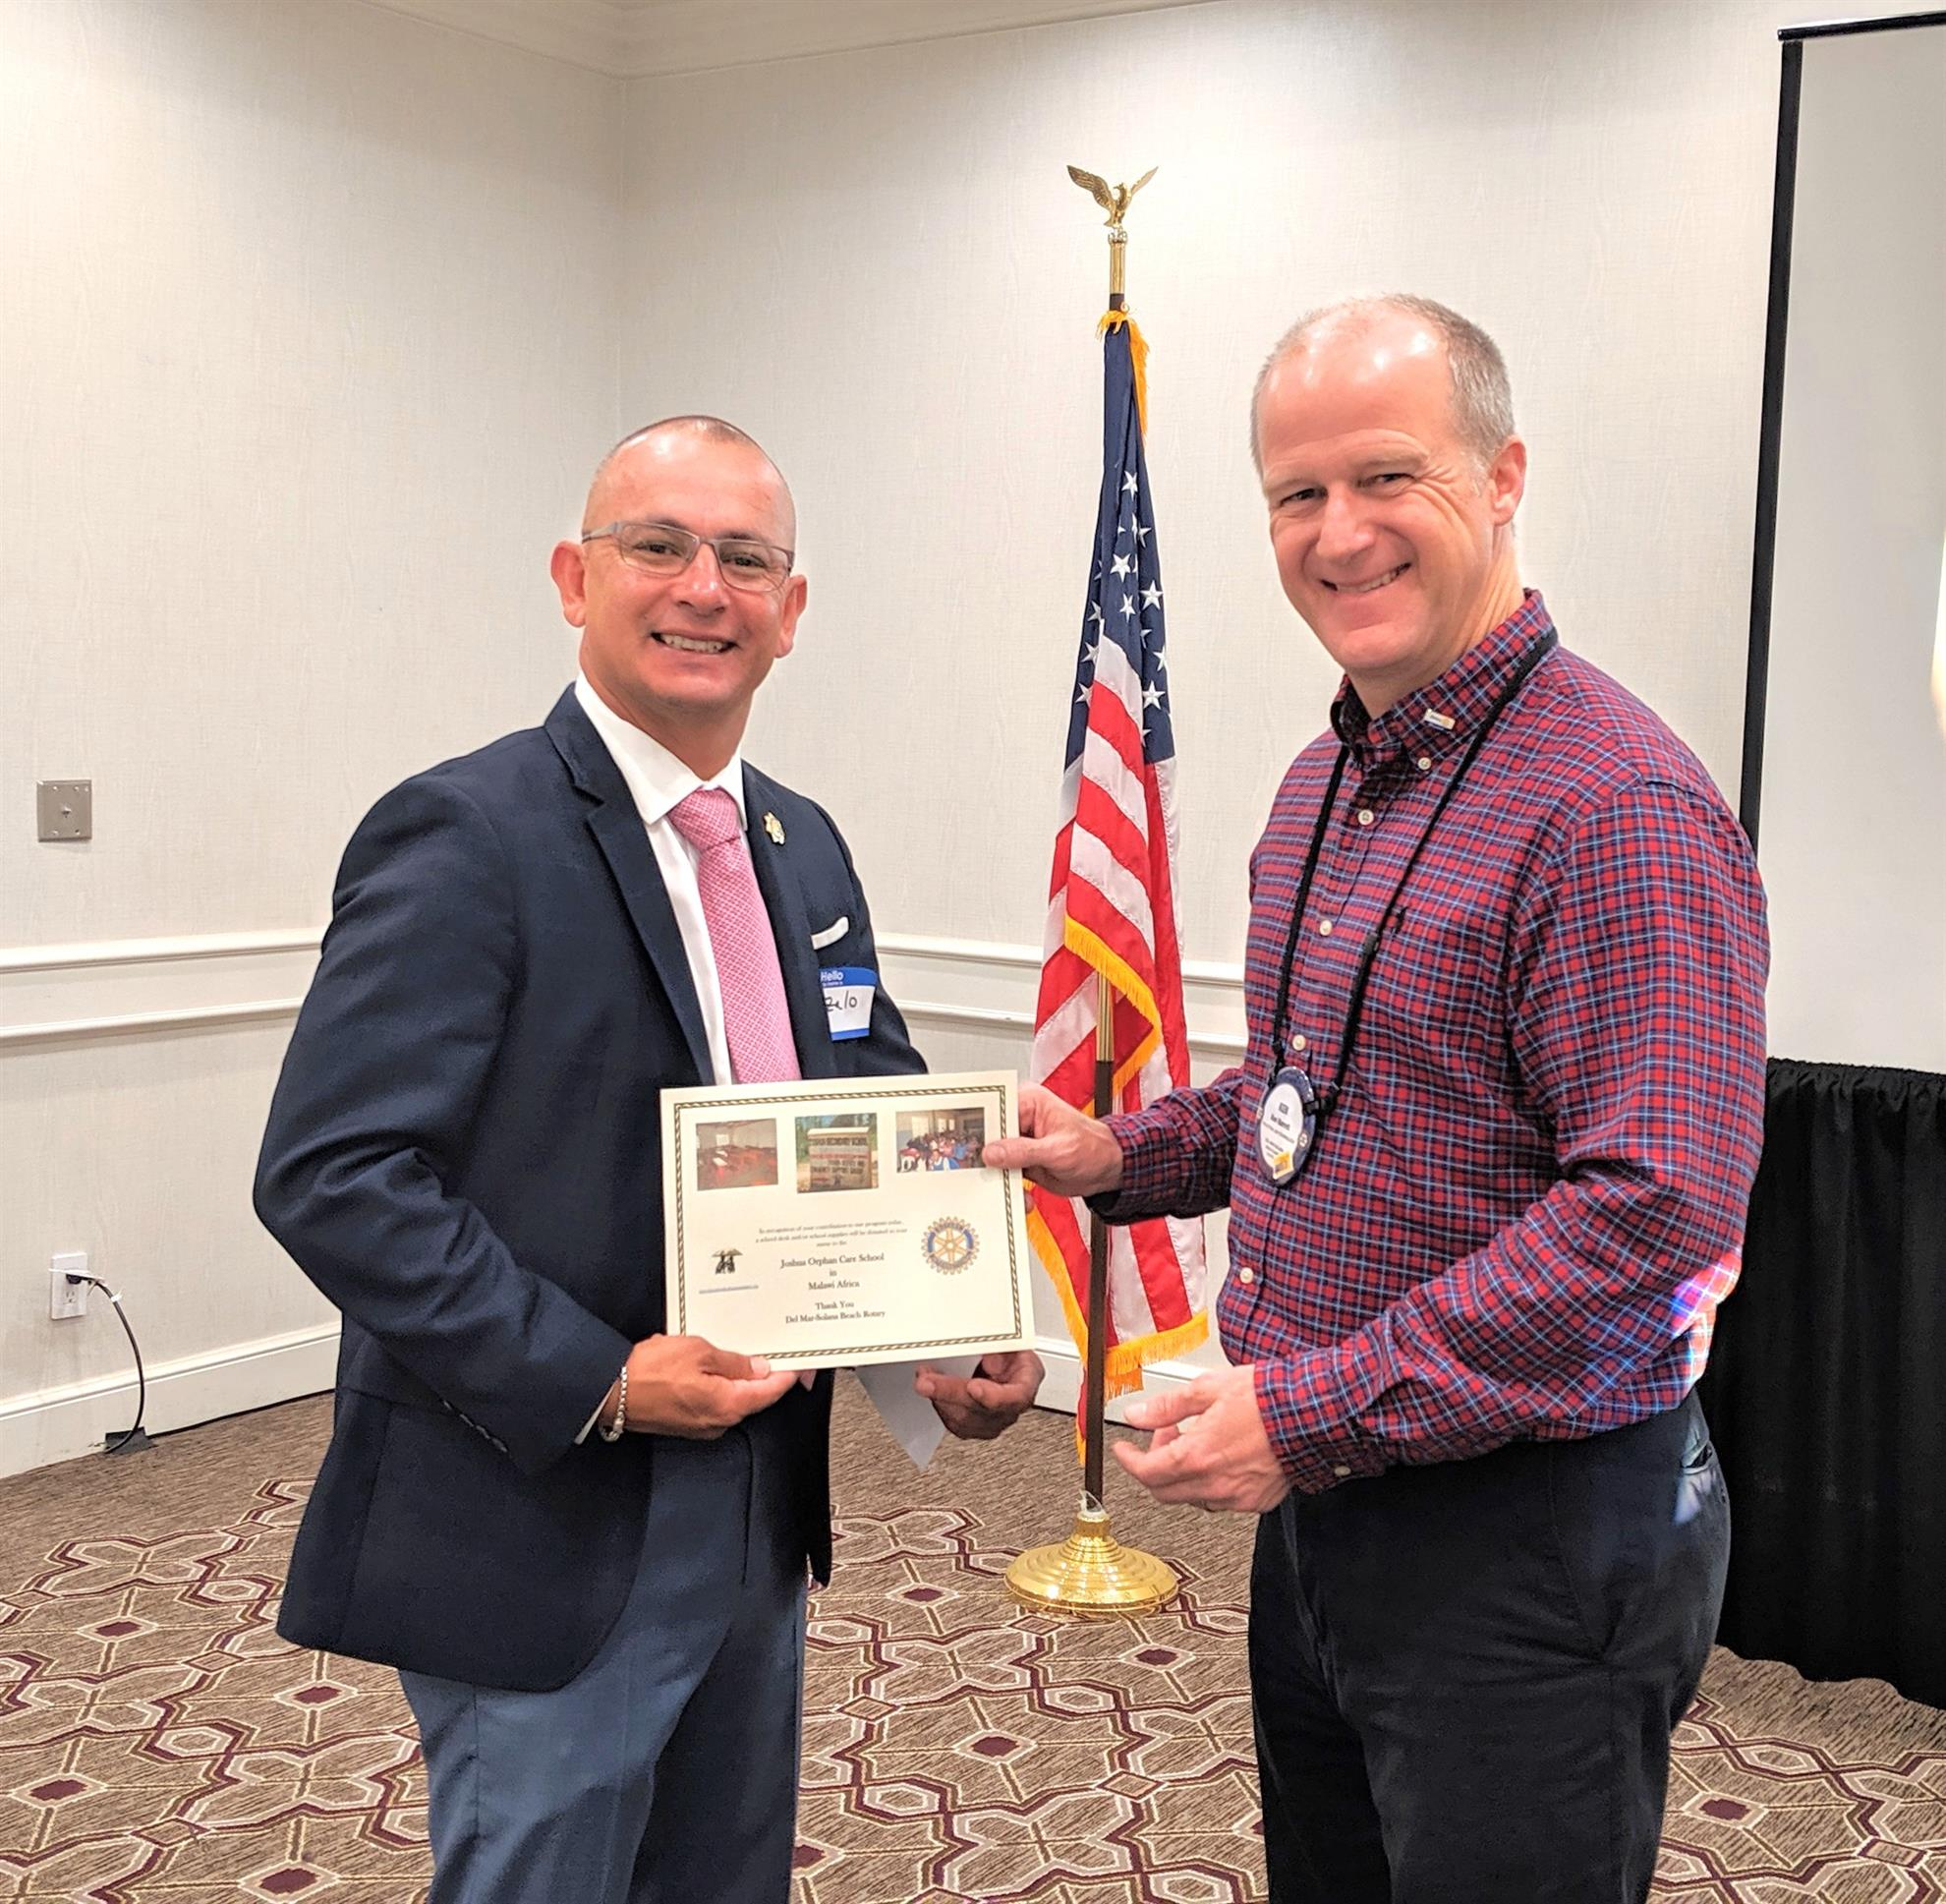 274599dbde In the end DMSB Club interim President Ken Barrett presented the speaker  with the Joshua certificate that represents our club DMSB donating school  supplies ...